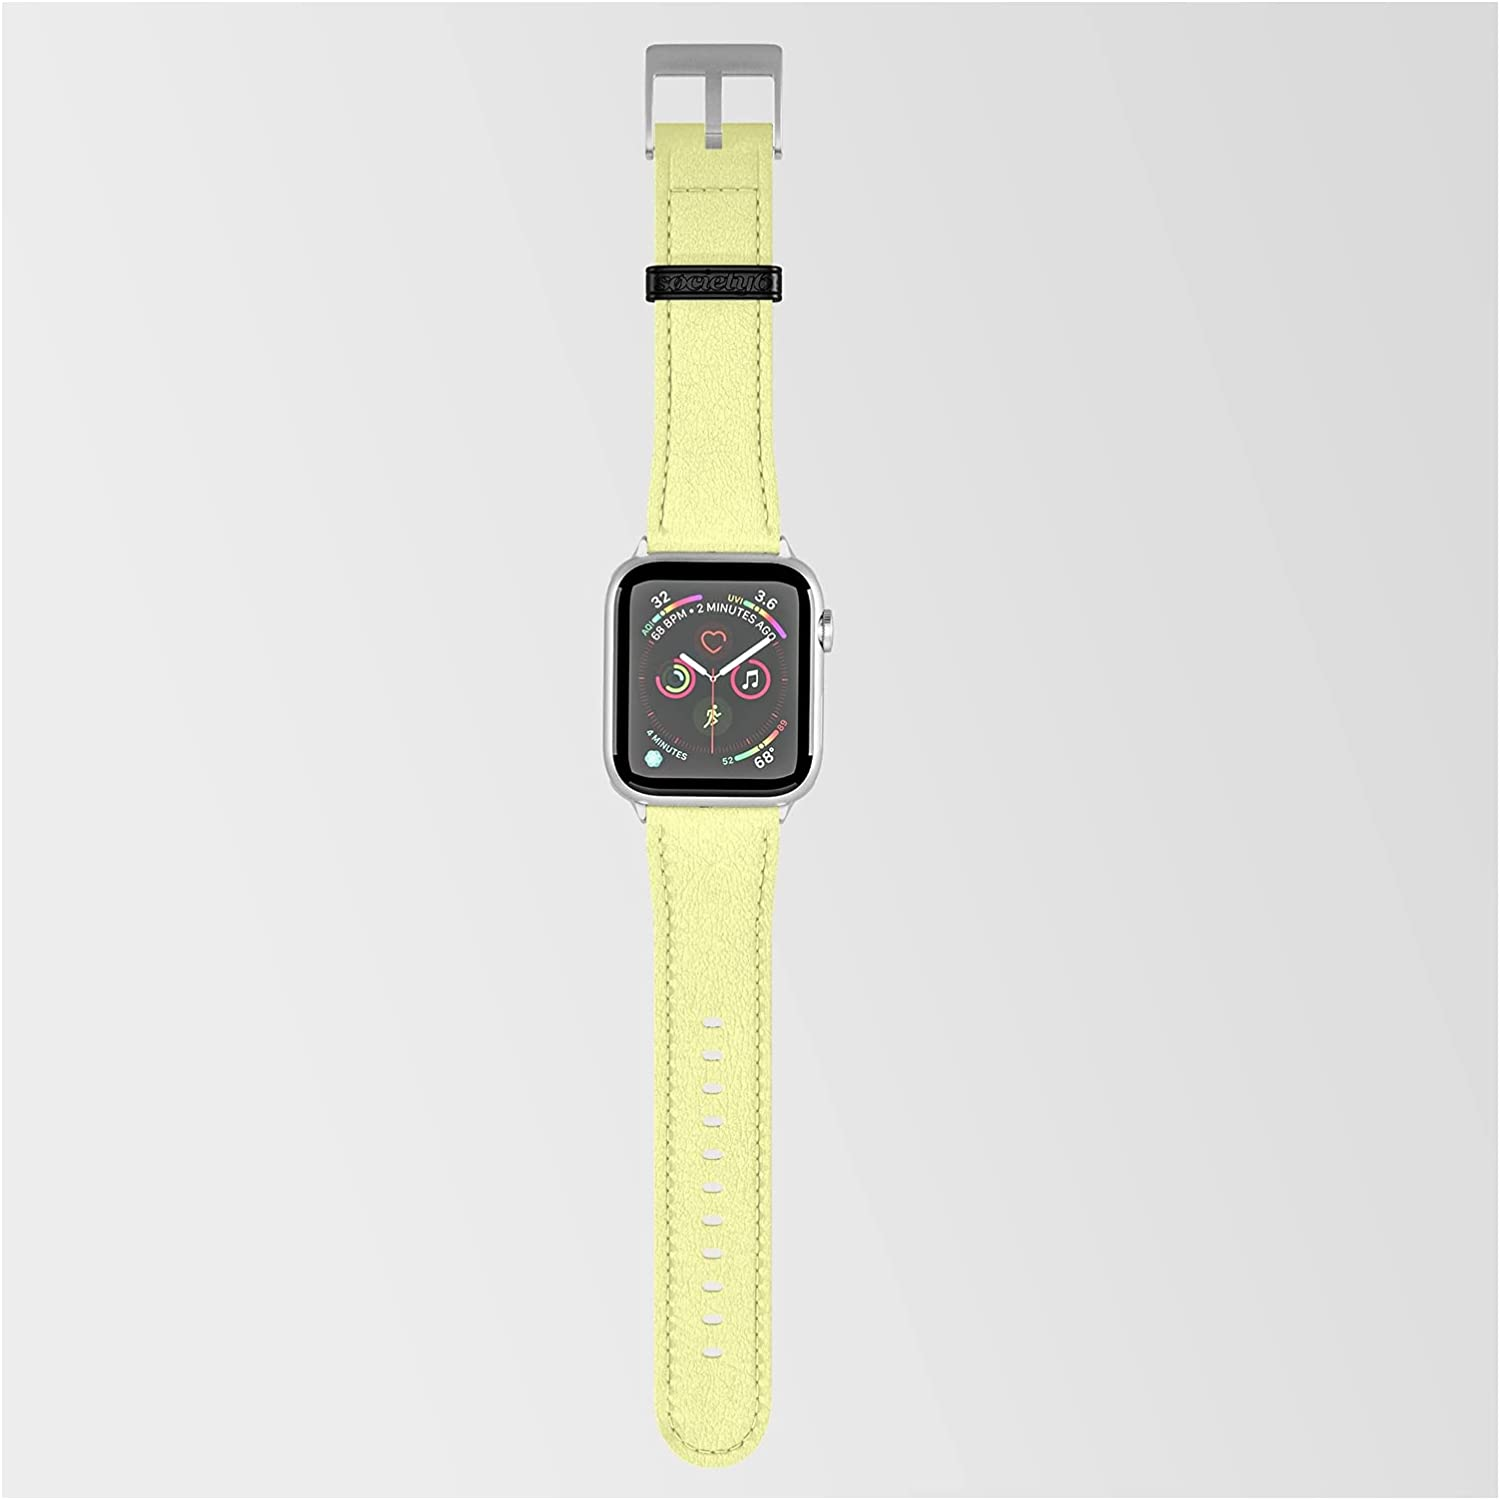 Soft Chalky Pastel Yellow 2021 model Solid Podartist Smartwatch Popular popular by on Color